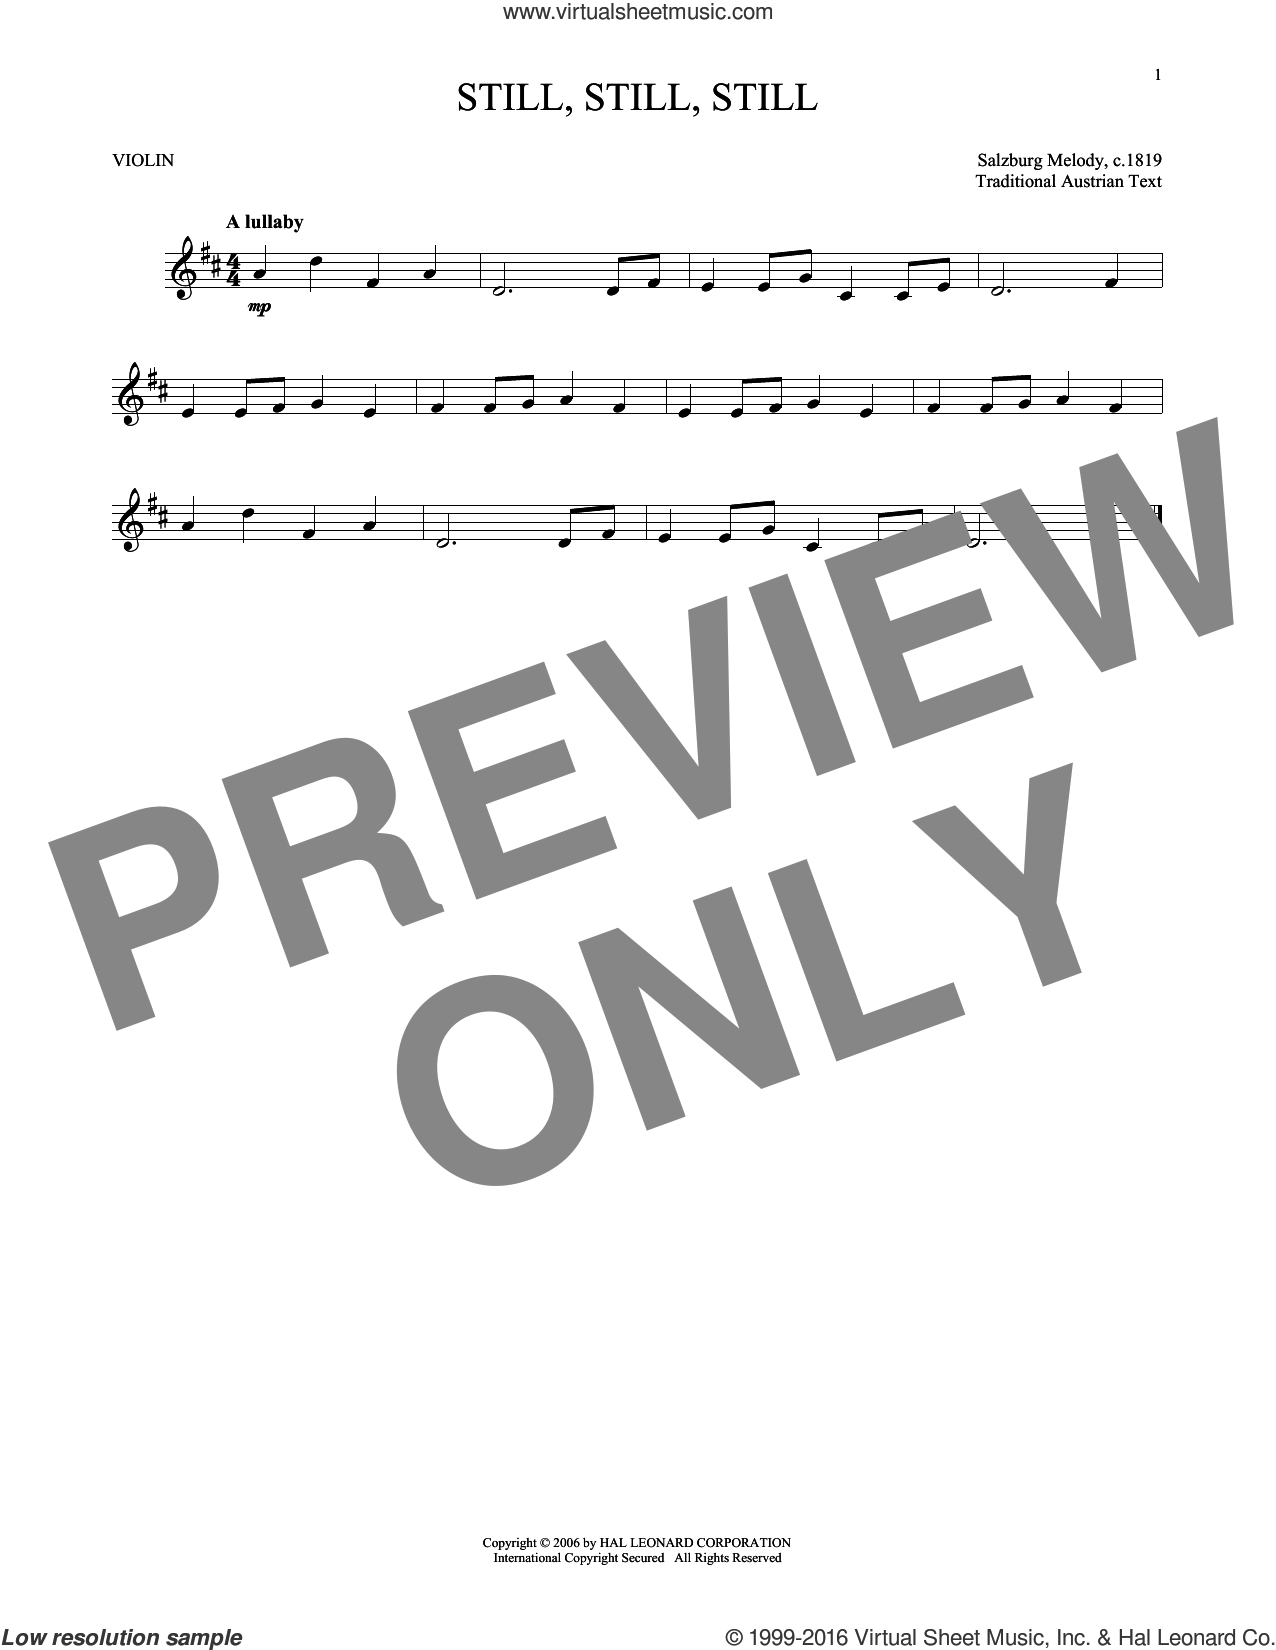 Still, Still, Still sheet music for violin solo by Salzburg Melody c.1819 and Miscellaneous, intermediate skill level